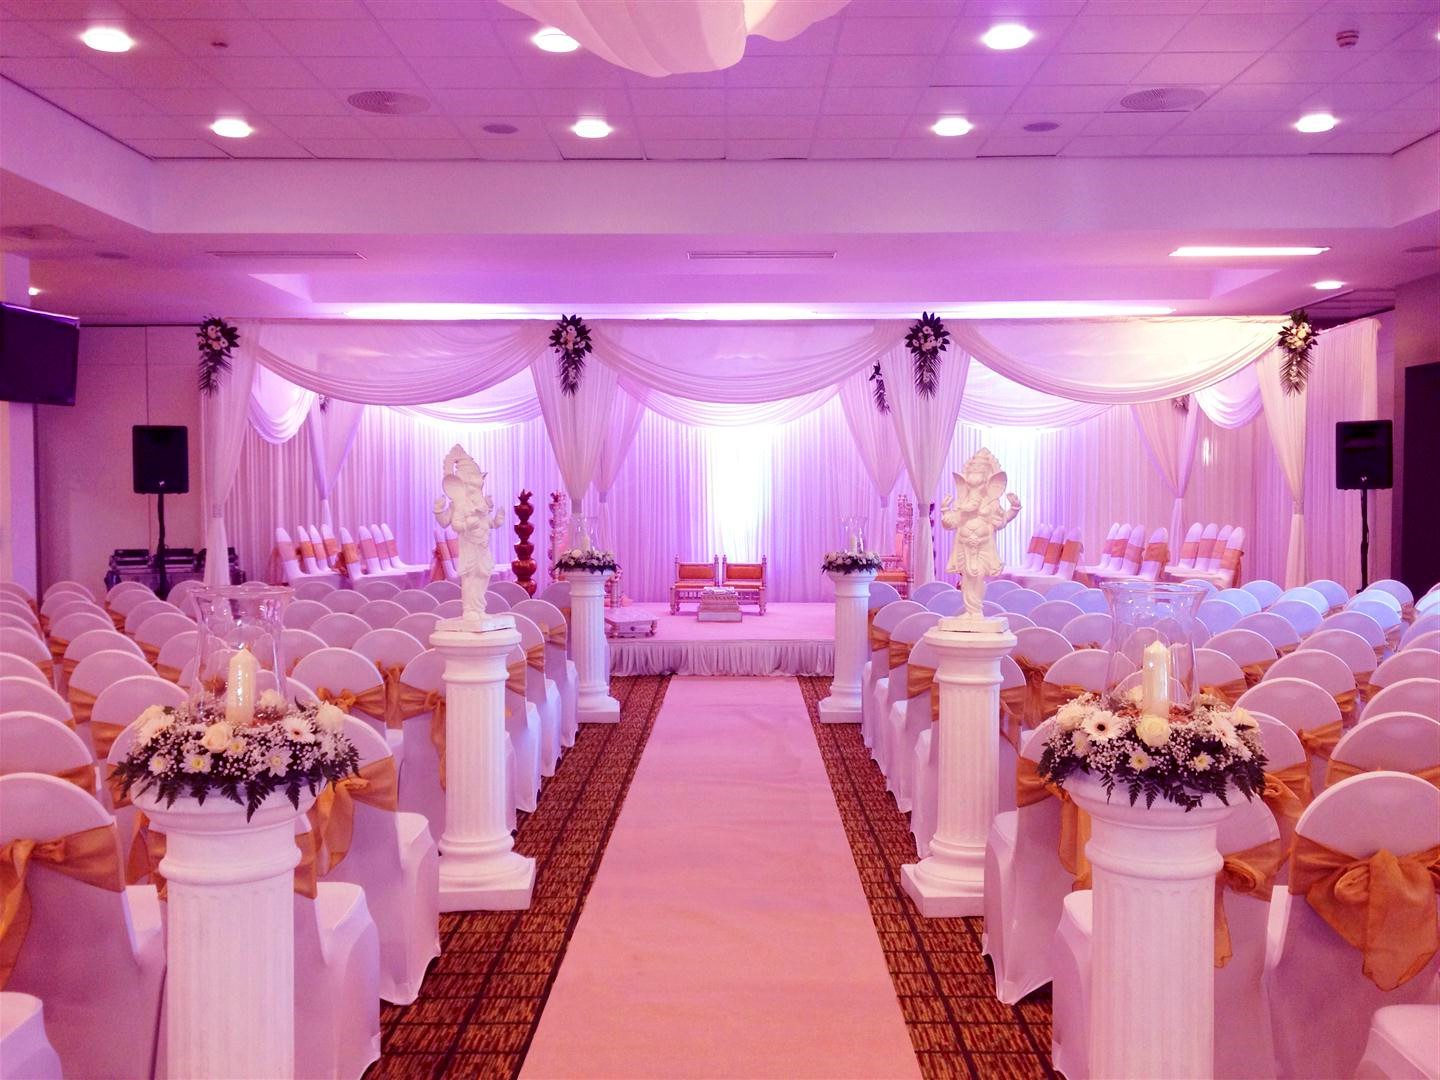 Marvelous purple wedding decoration all about wedding for Wedding reception room decoration ideas